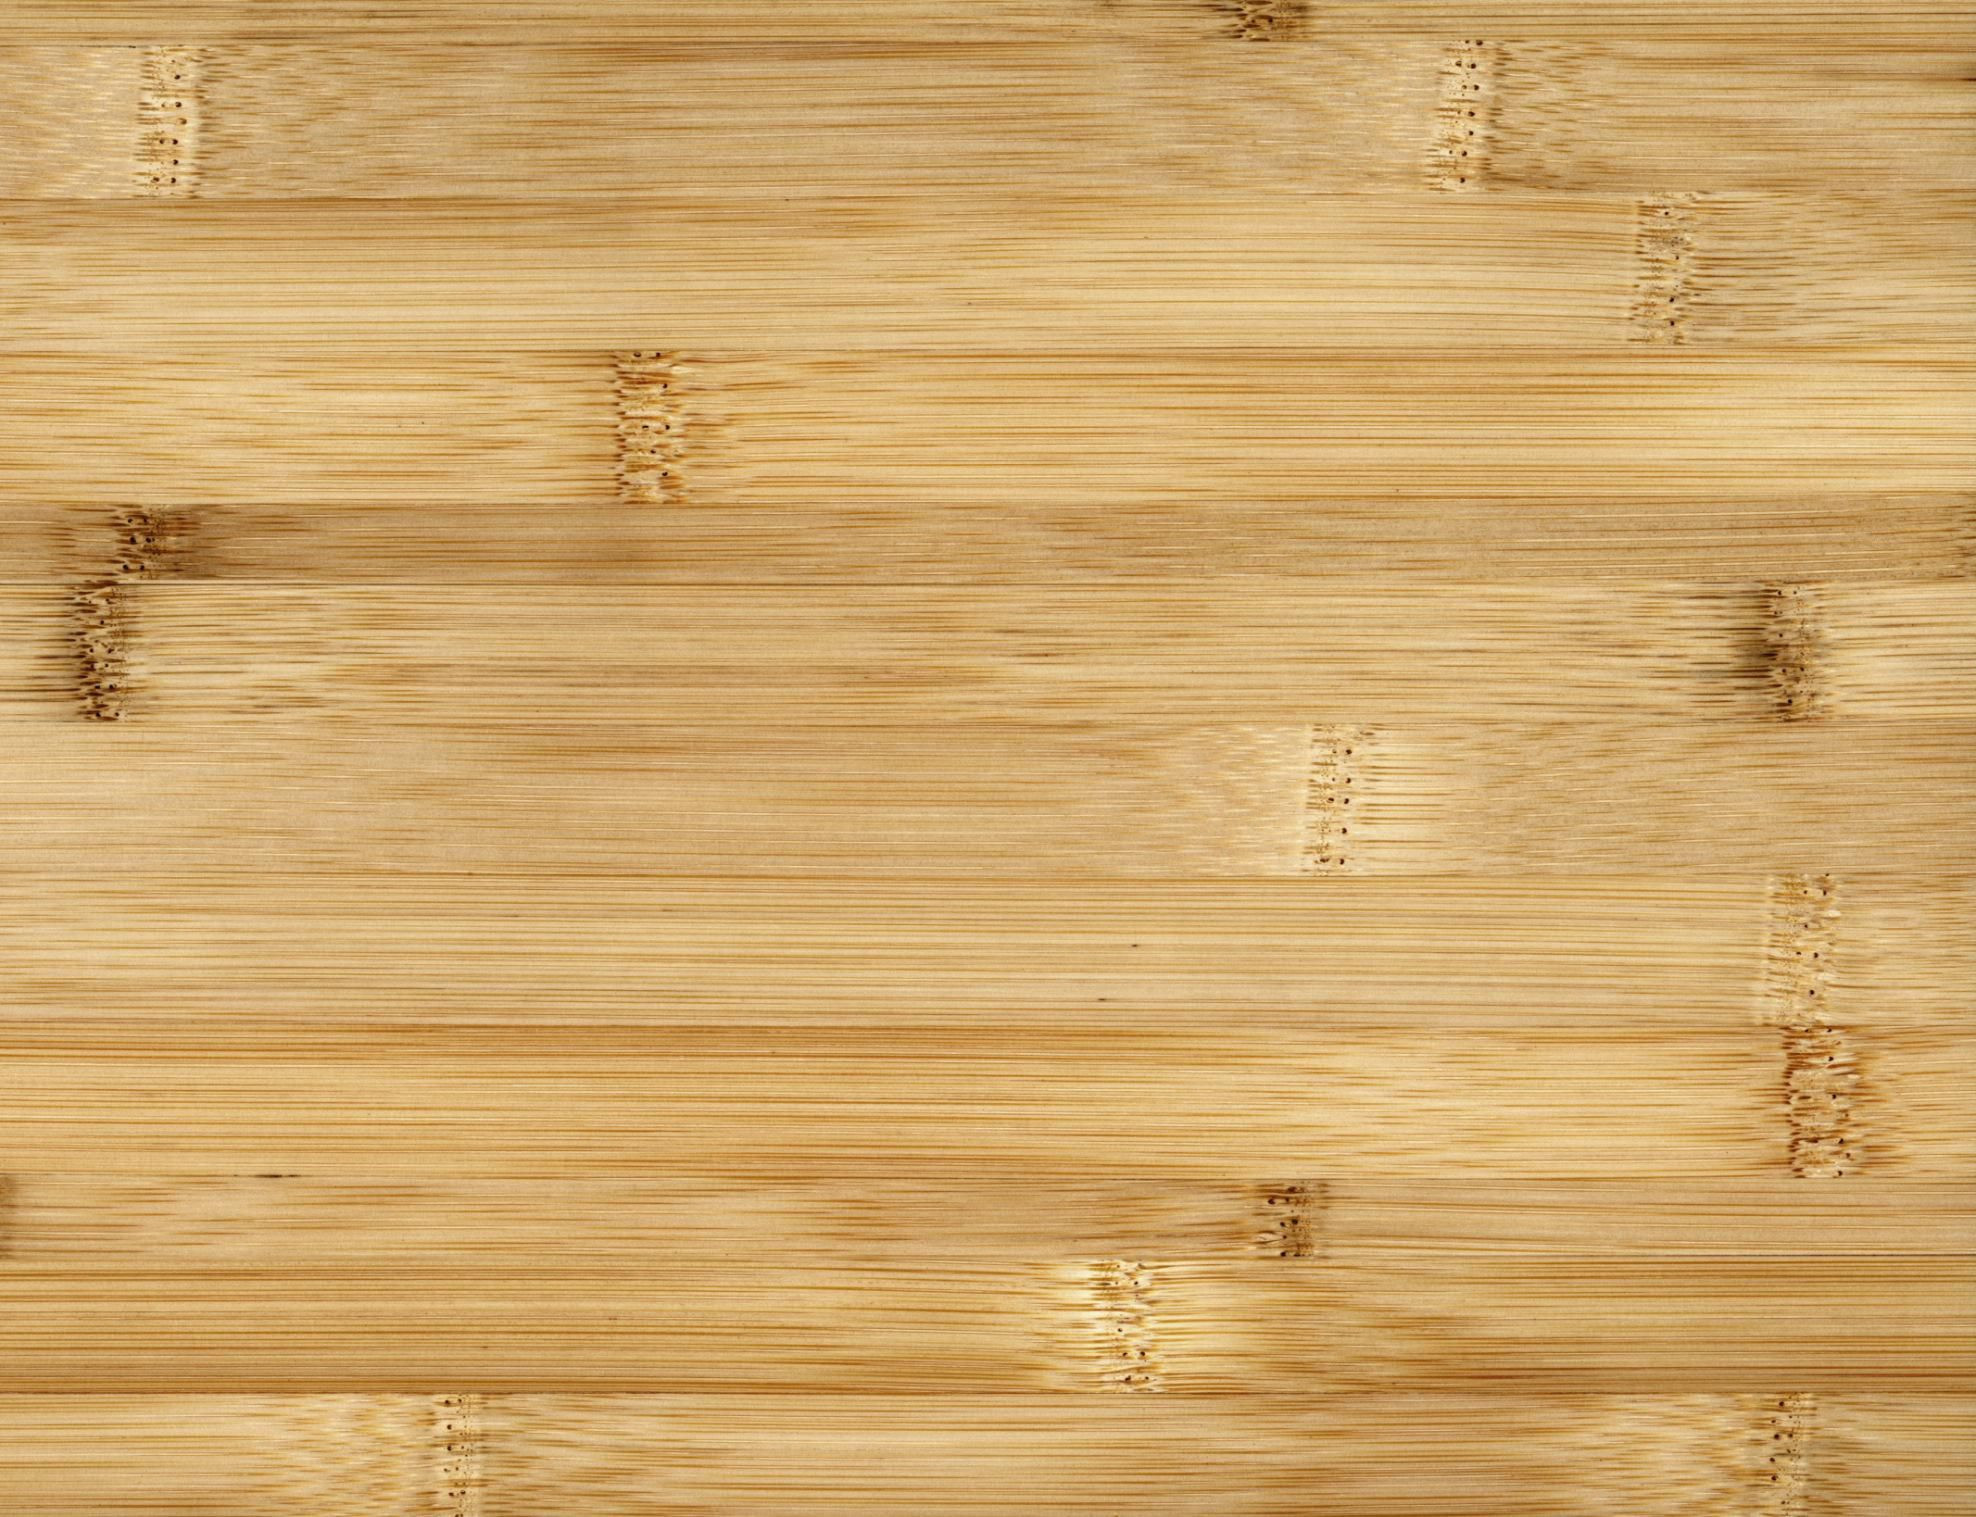 how do you care for engineered hardwood floors of how to clean bamboo flooring intended for 200266305 001 56a2fd815f9b58b7d0d000cd